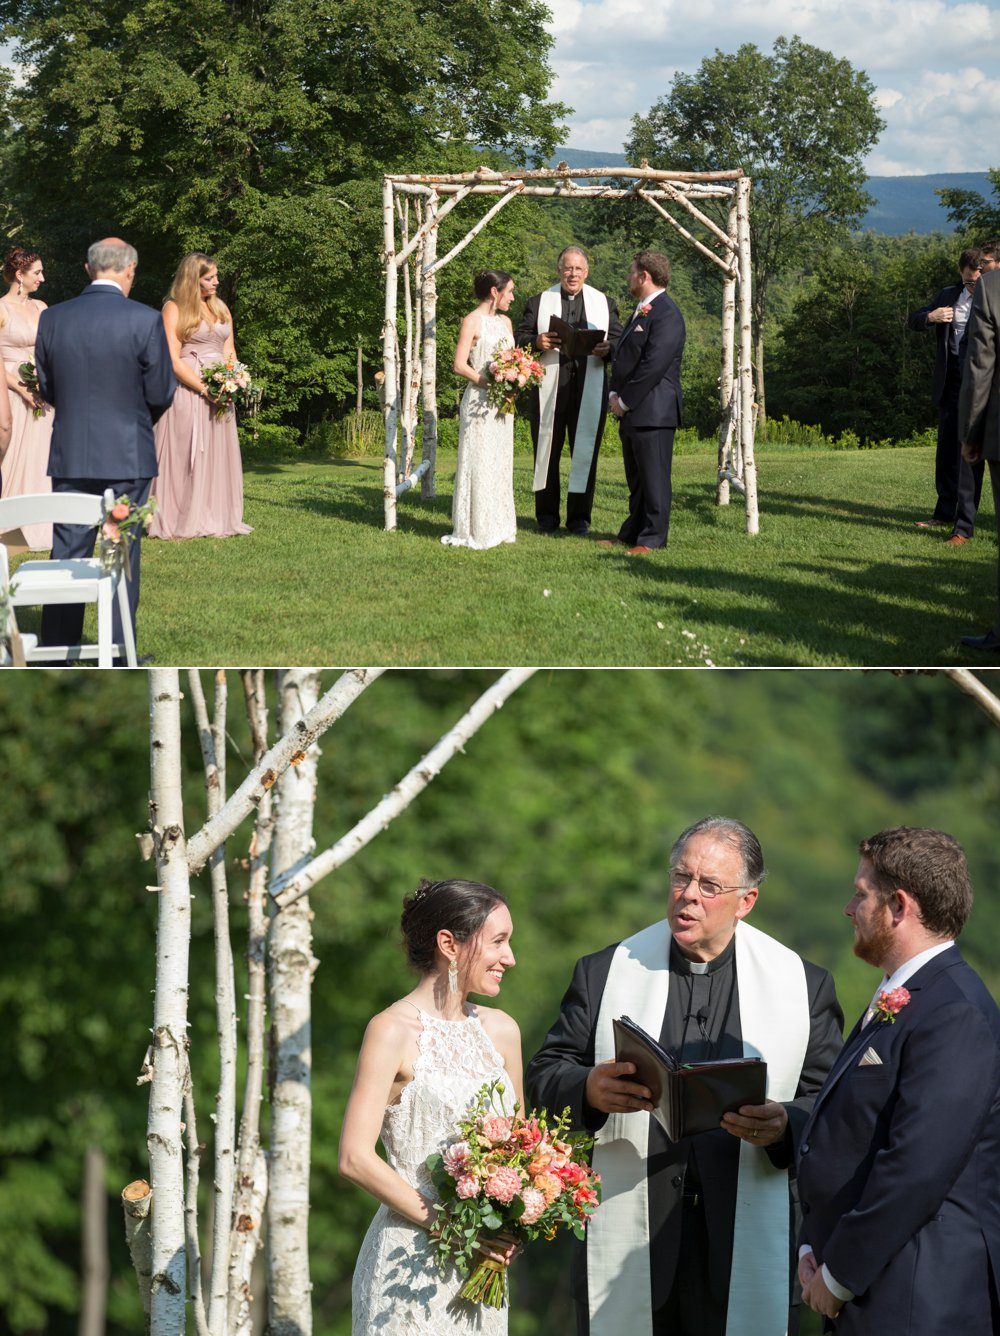 SomerbyJonesPhotography_WestMountainInnWedding_WestMountainInn_RusticVermontWedding_0022.jpg